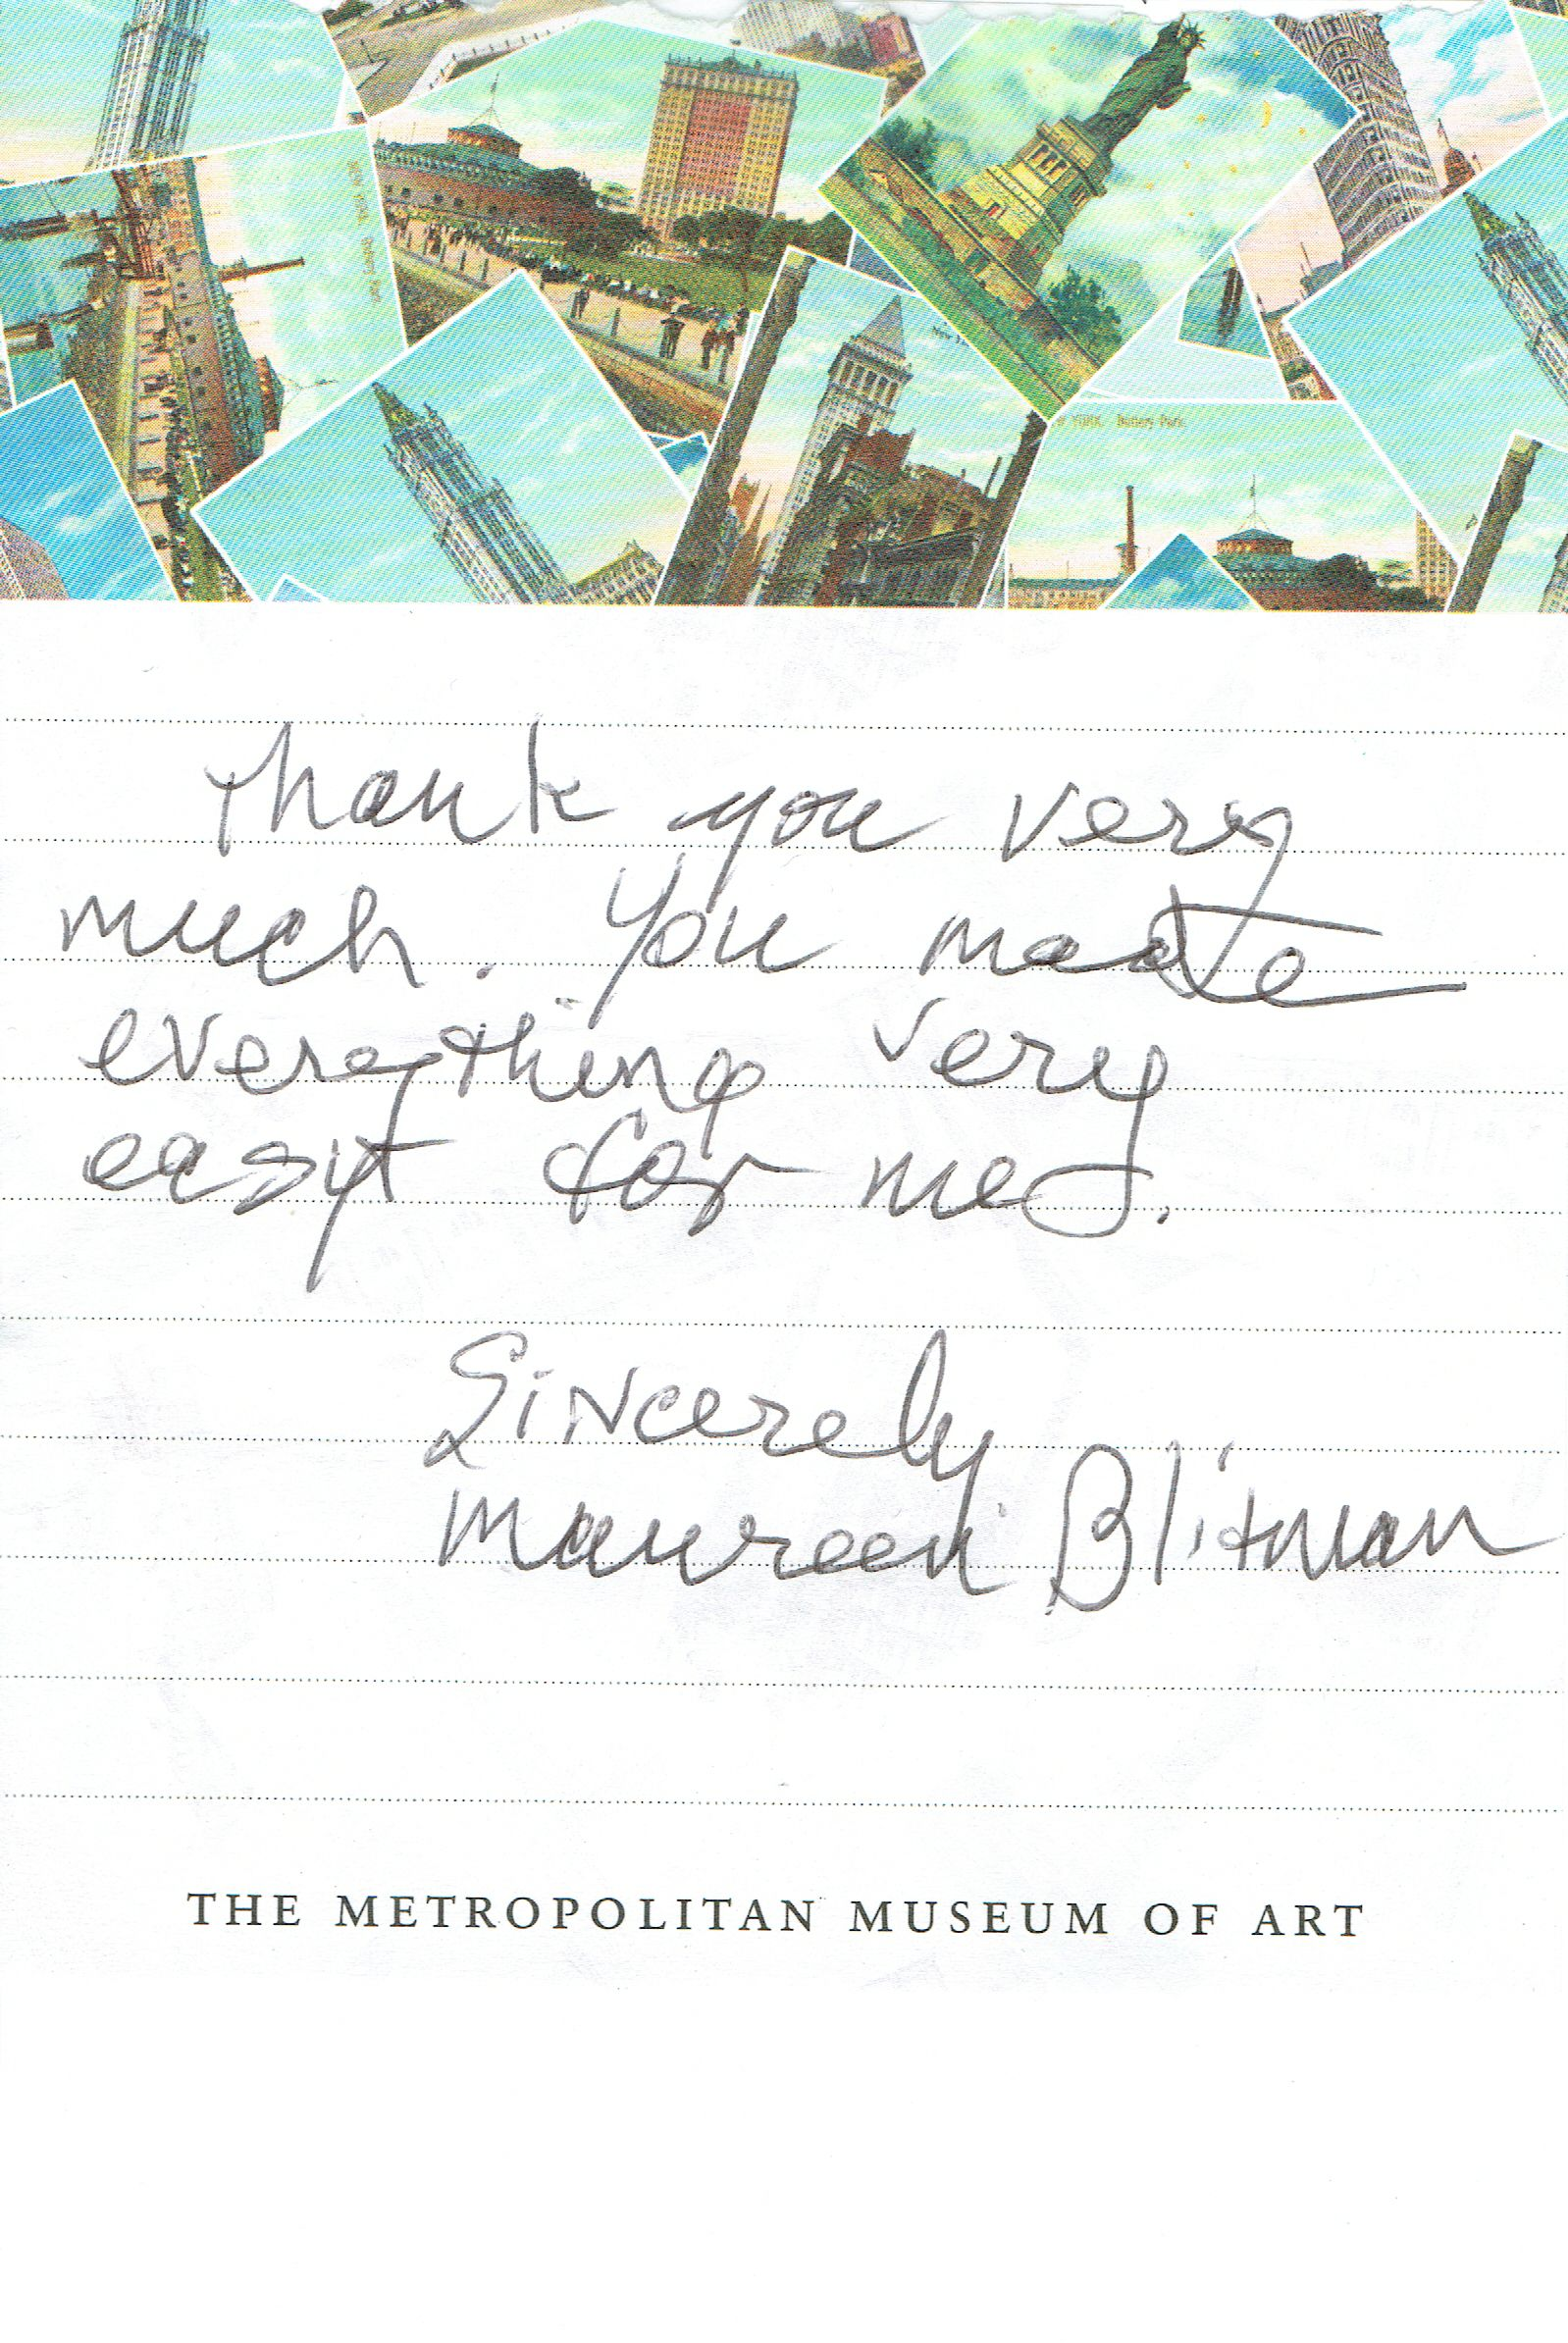 Thank you note - Maureen Blitman